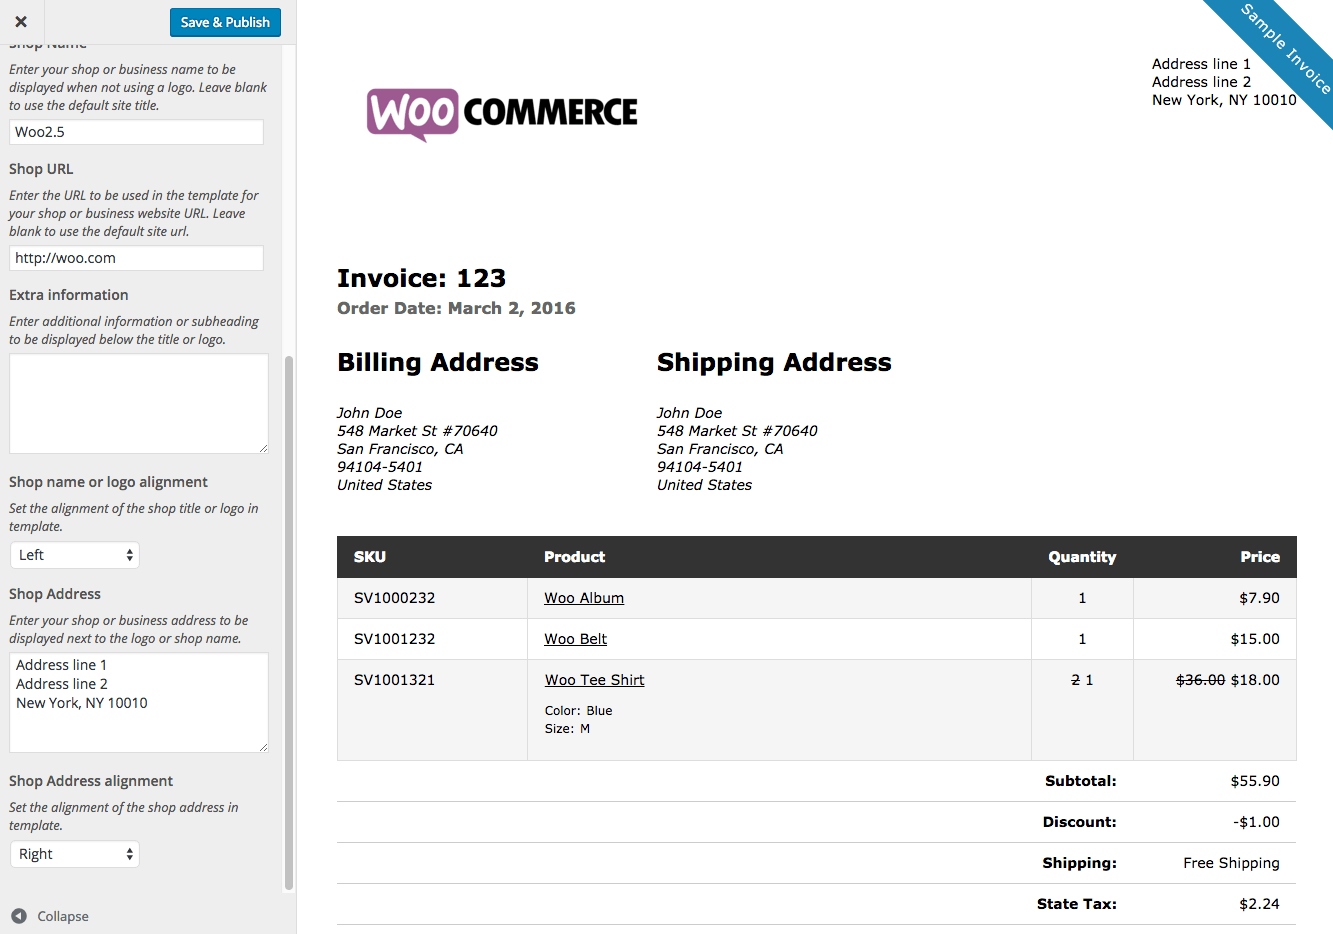 Modaoxus  Picturesque Woocommerce Print Invoices Amp Packing Lists  Woocommerce Docs With Outstanding Woocommerce Print Invoices  Packing Lists Customizer With Amazing Invoicing Paypal Also Payment Terms On Invoices In Addition Canada Invoice And Free Invoice Templates Printable As Well As Ebay Invoice Software Additionally Free Invoice And Accounting Software From Docswoocommercecom With Modaoxus  Outstanding Woocommerce Print Invoices Amp Packing Lists  Woocommerce Docs With Amazing Woocommerce Print Invoices  Packing Lists Customizer And Picturesque Invoicing Paypal Also Payment Terms On Invoices In Addition Canada Invoice From Docswoocommercecom